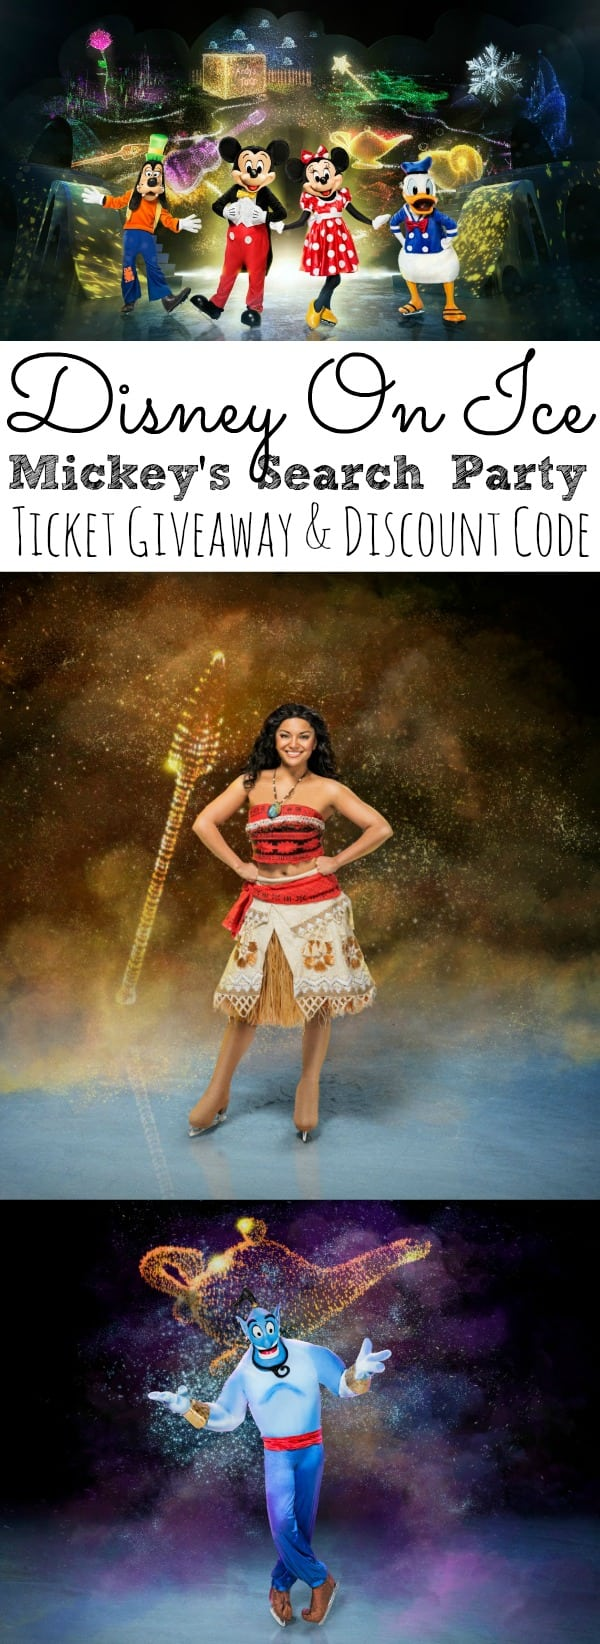 Disney On Ice Mickey's Search Party Ticket Giveaway + Discount Code - simplytodaylife.com